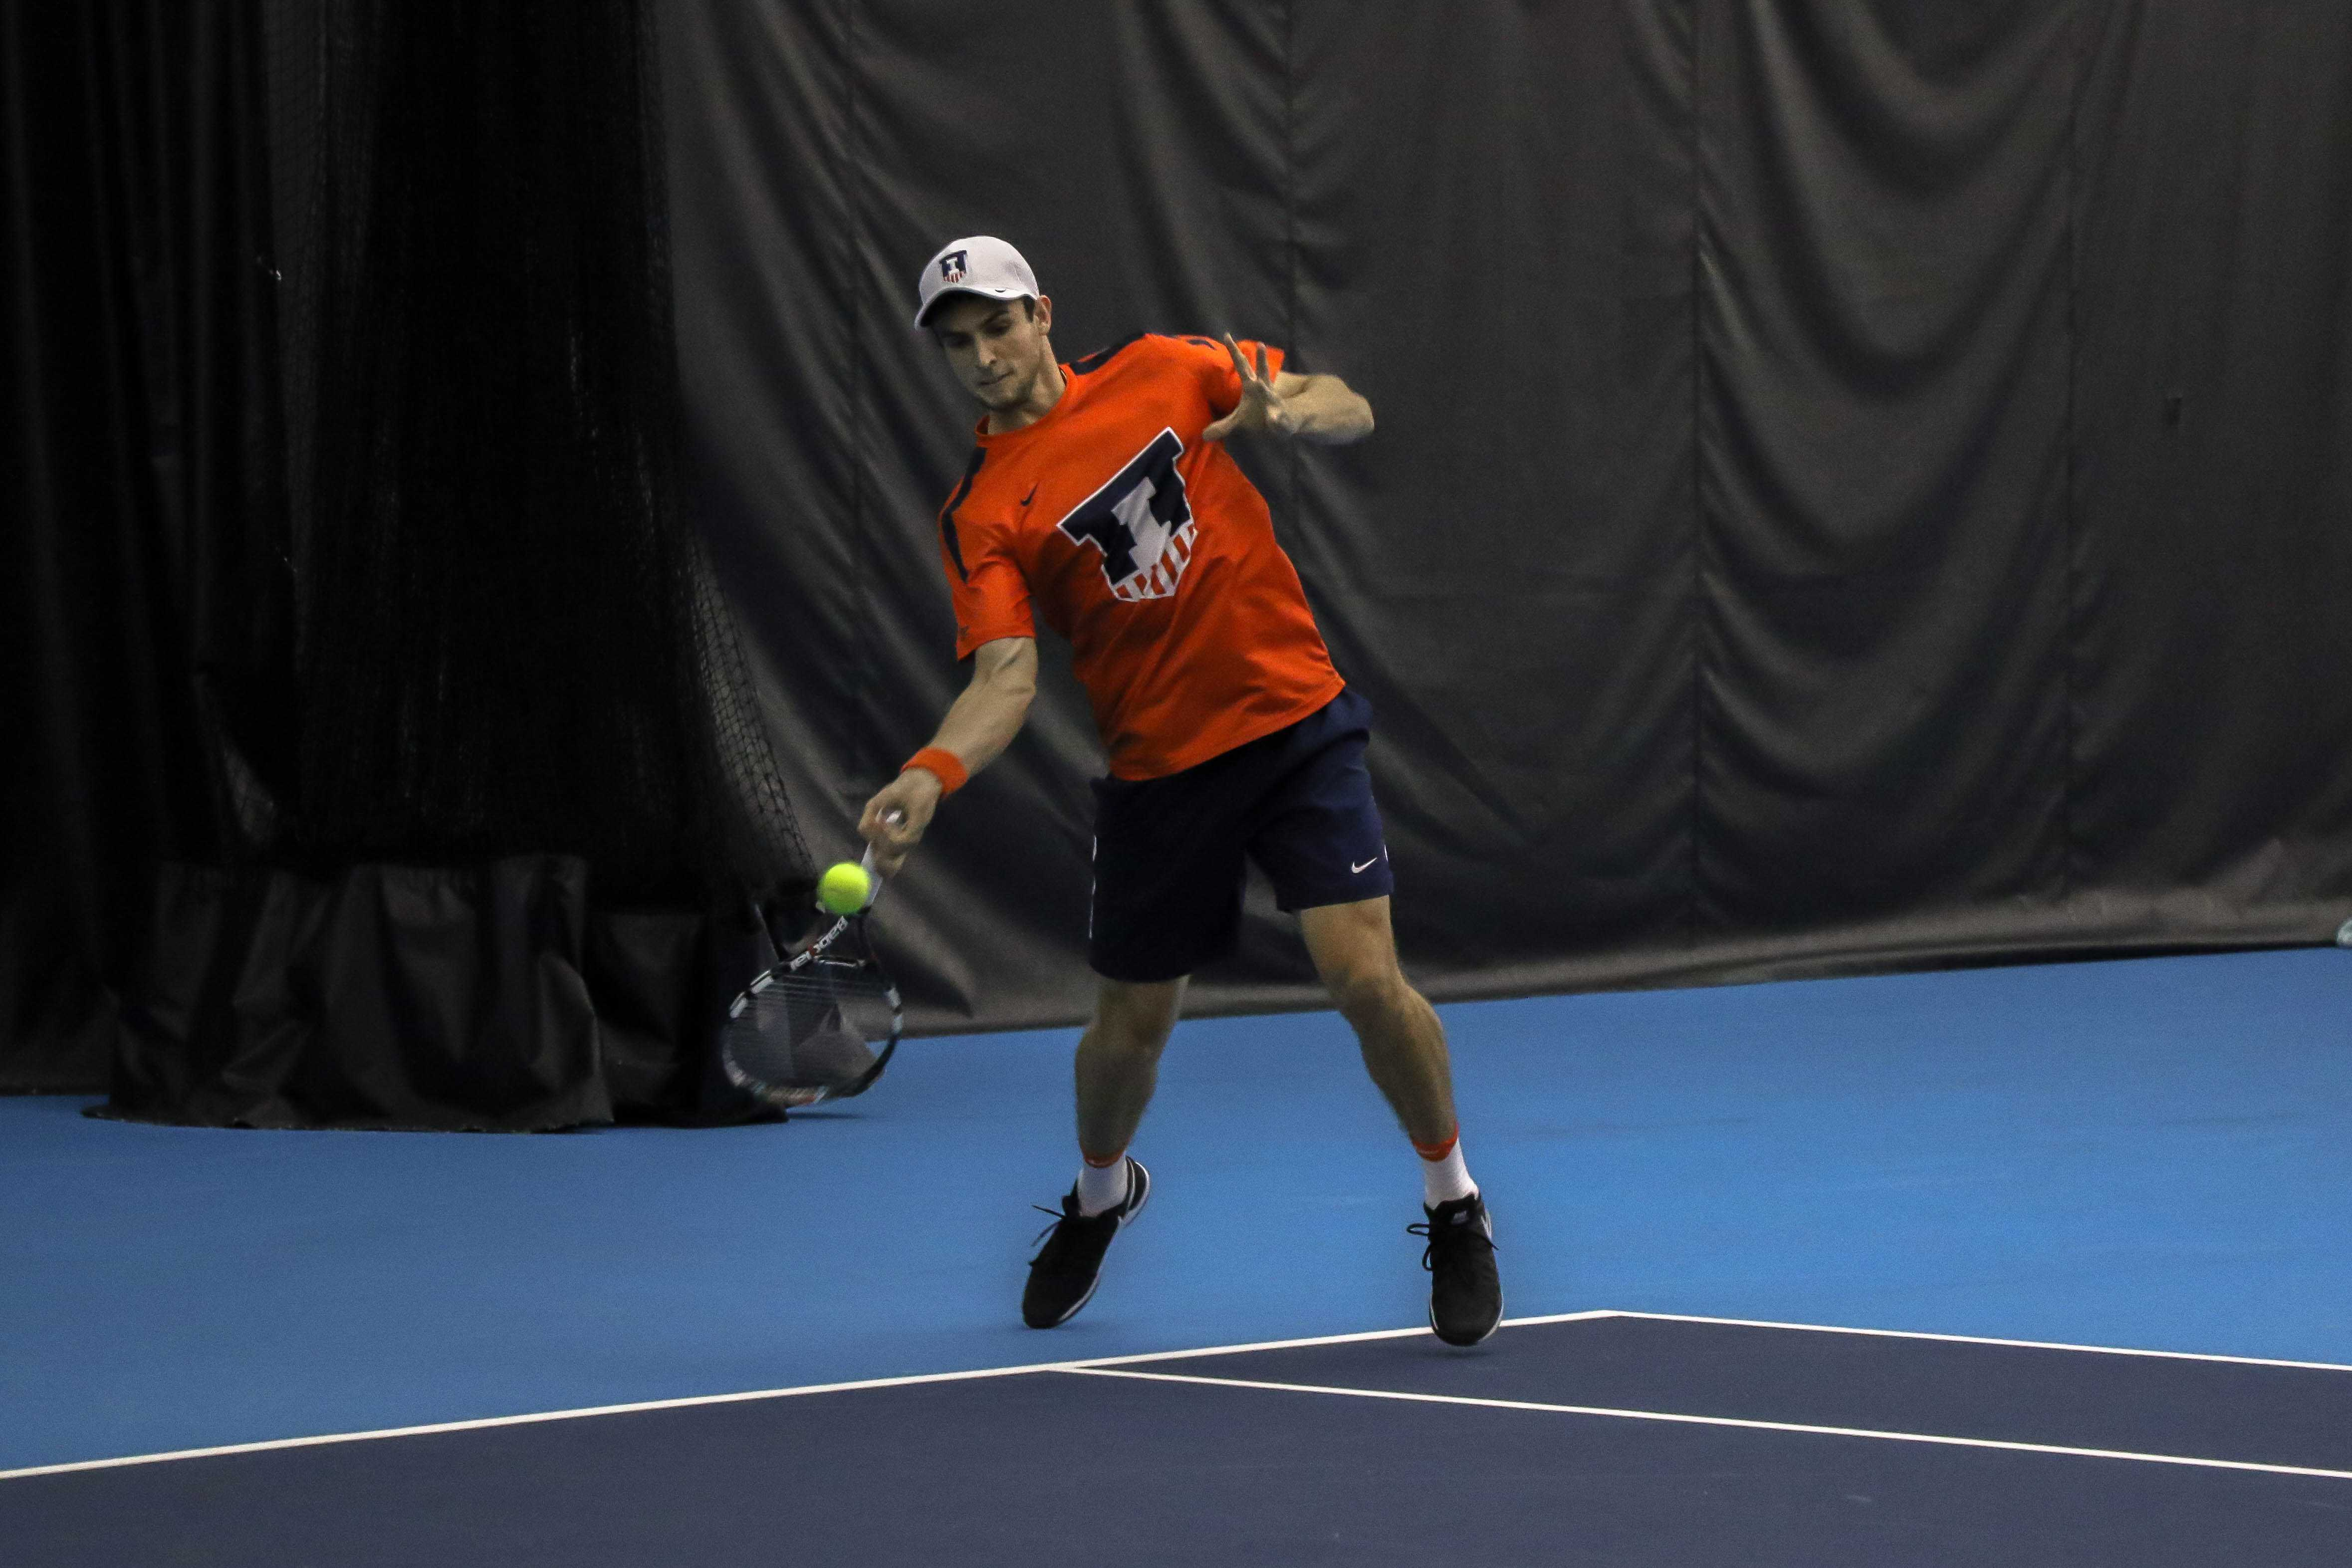 Illinois' Aleks Vukic returns the ball in the match against University of Kentucky on Friday, Feb. 24 at the Atkins Tennis Center in Urbana.